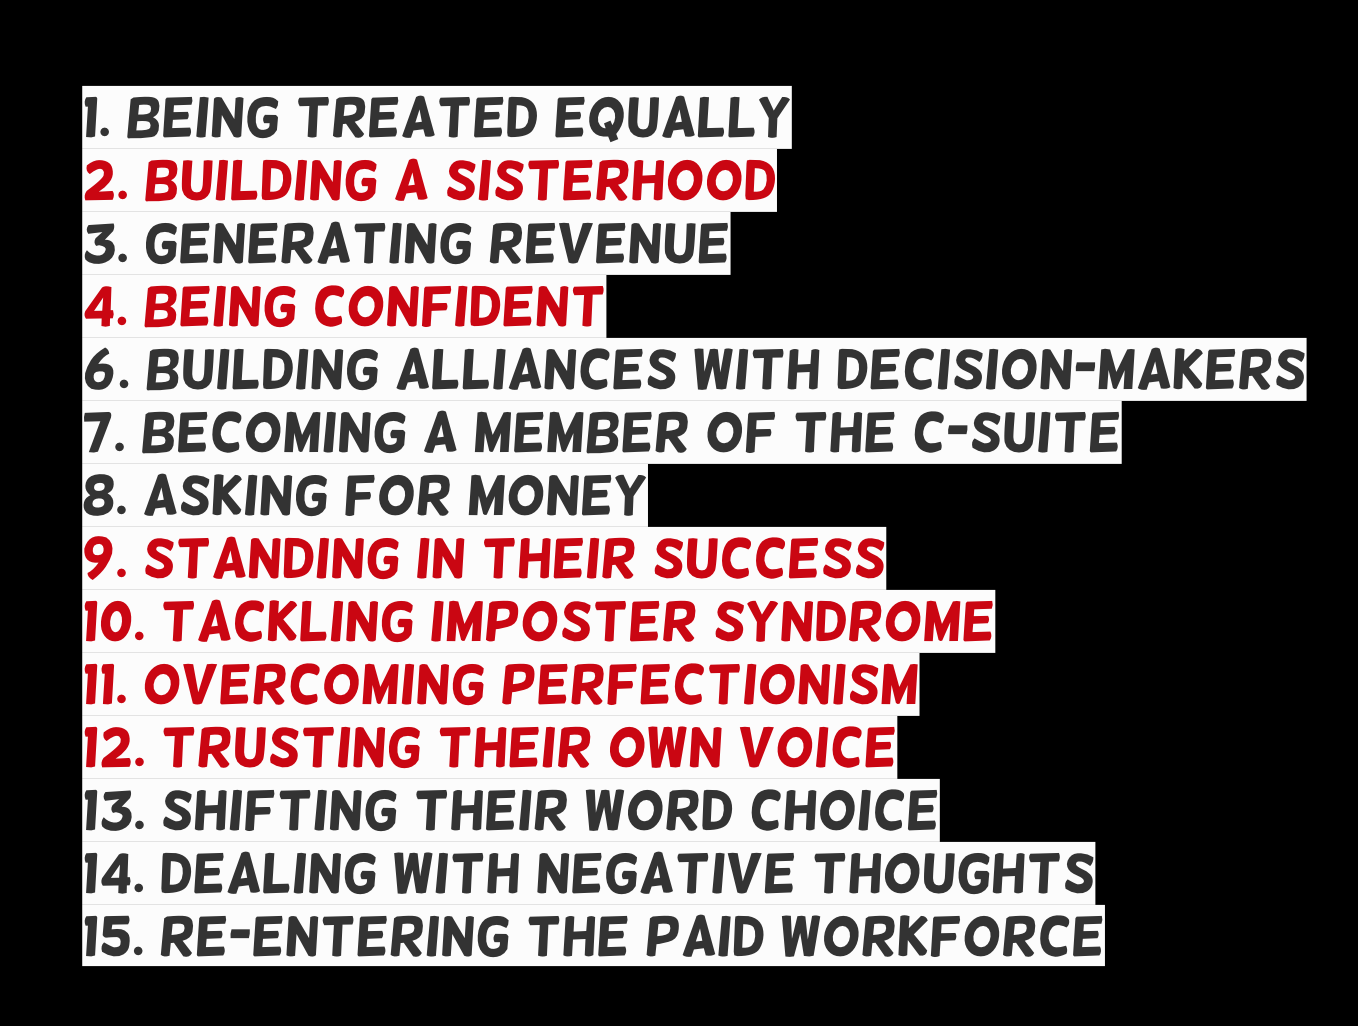 1. Being Treated Equally  2. Building A Sisterhood  3. Generating Revenue  4. Being Confident  6. Building Alliances With Decision-Makers  7. Becoming A Member Of The C-Suite  8. Asking For Money  9. Standing In Their Success  10. Tackling Imposter Syndrome  11. Overcoming Perfectionism  12. Trusting Their Own Voice  13. Shifting Their Word Choice  14. Dealing With Negative Thoughts  15. Re-Entering The Paid Workforce